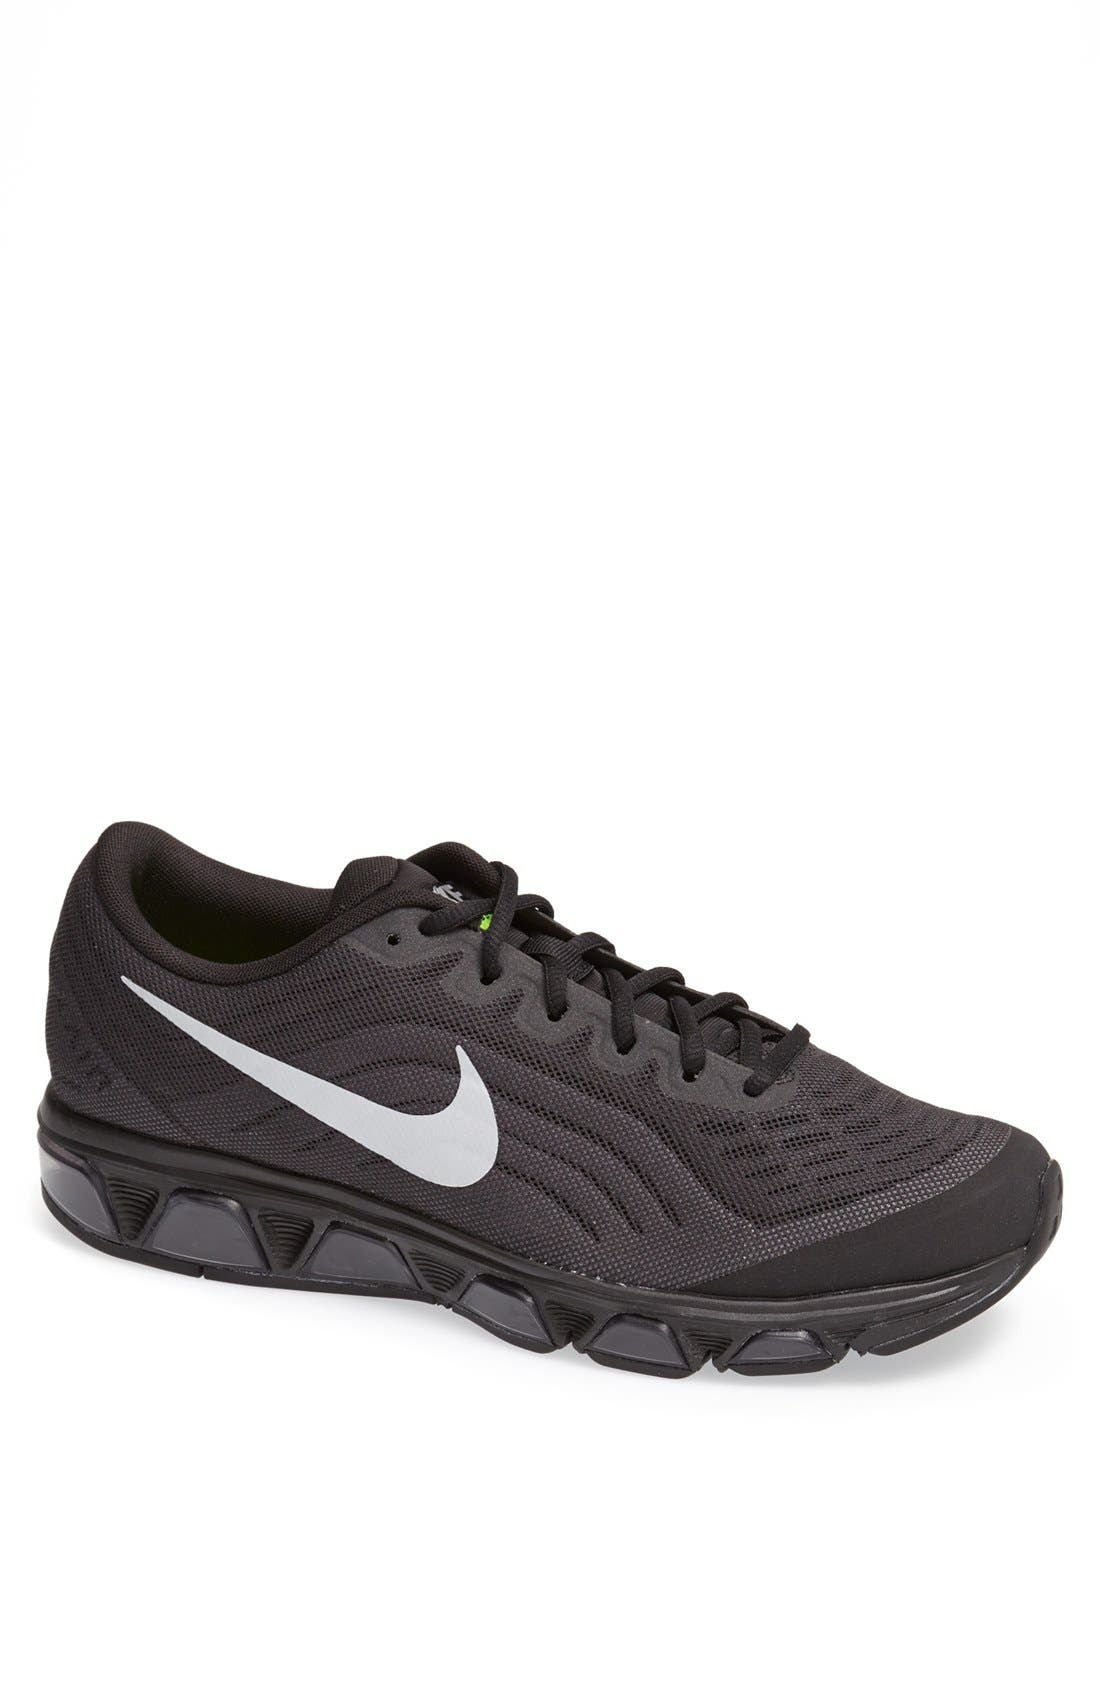 'Air Max Tailwind 6' Running Shoe,                         Main,                         color, 001